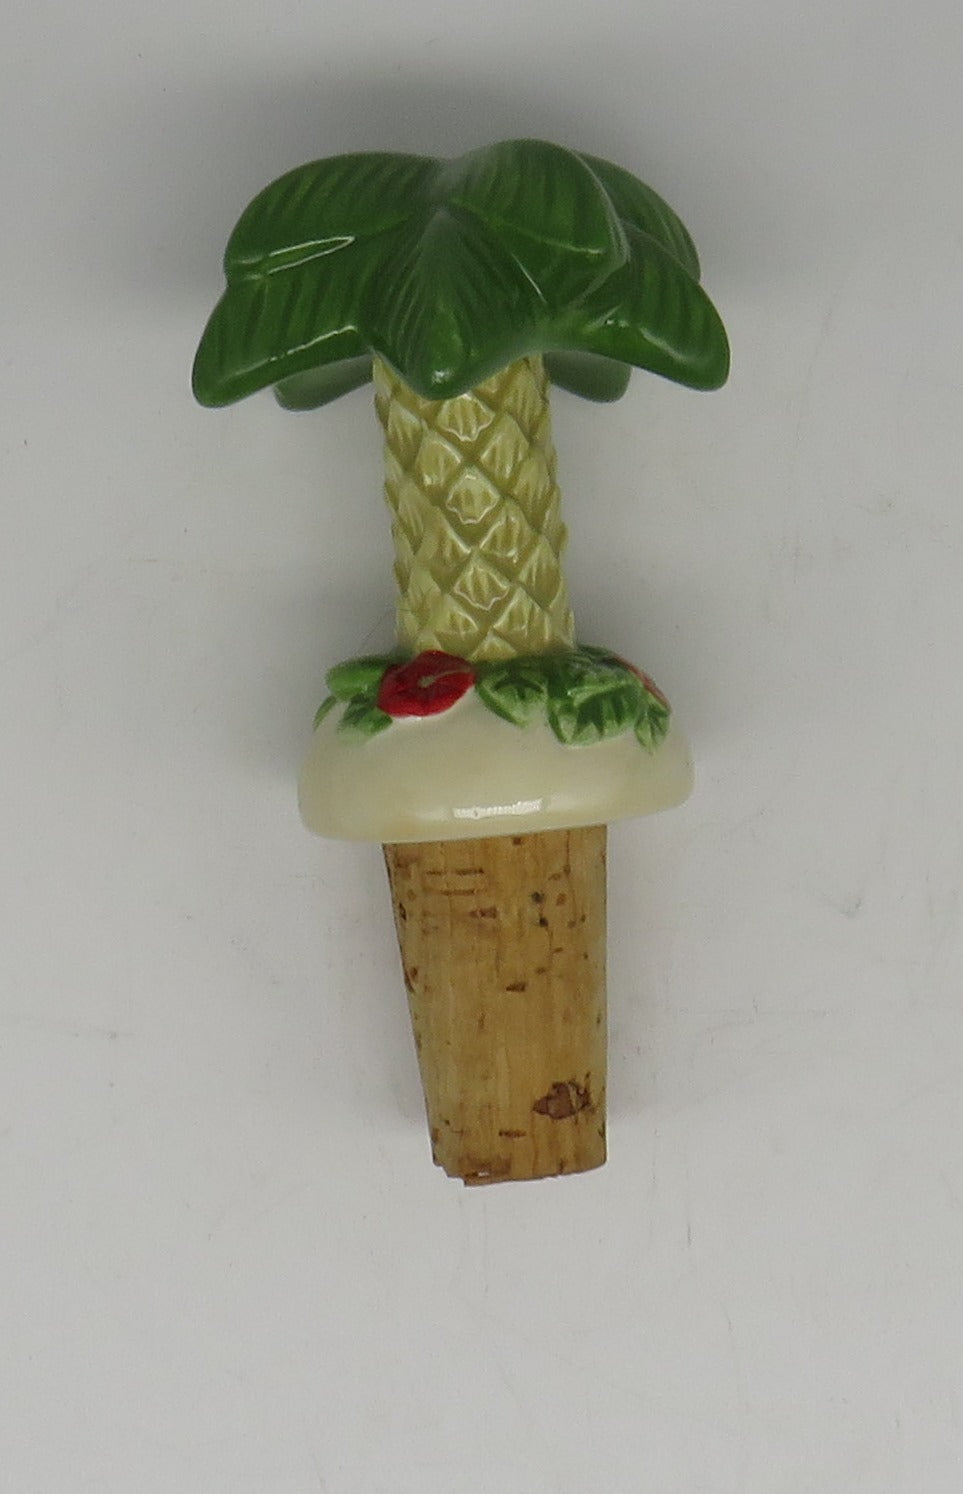 Cape Shore Ceramic Palm Tree Bottle Topper OBSOLETE